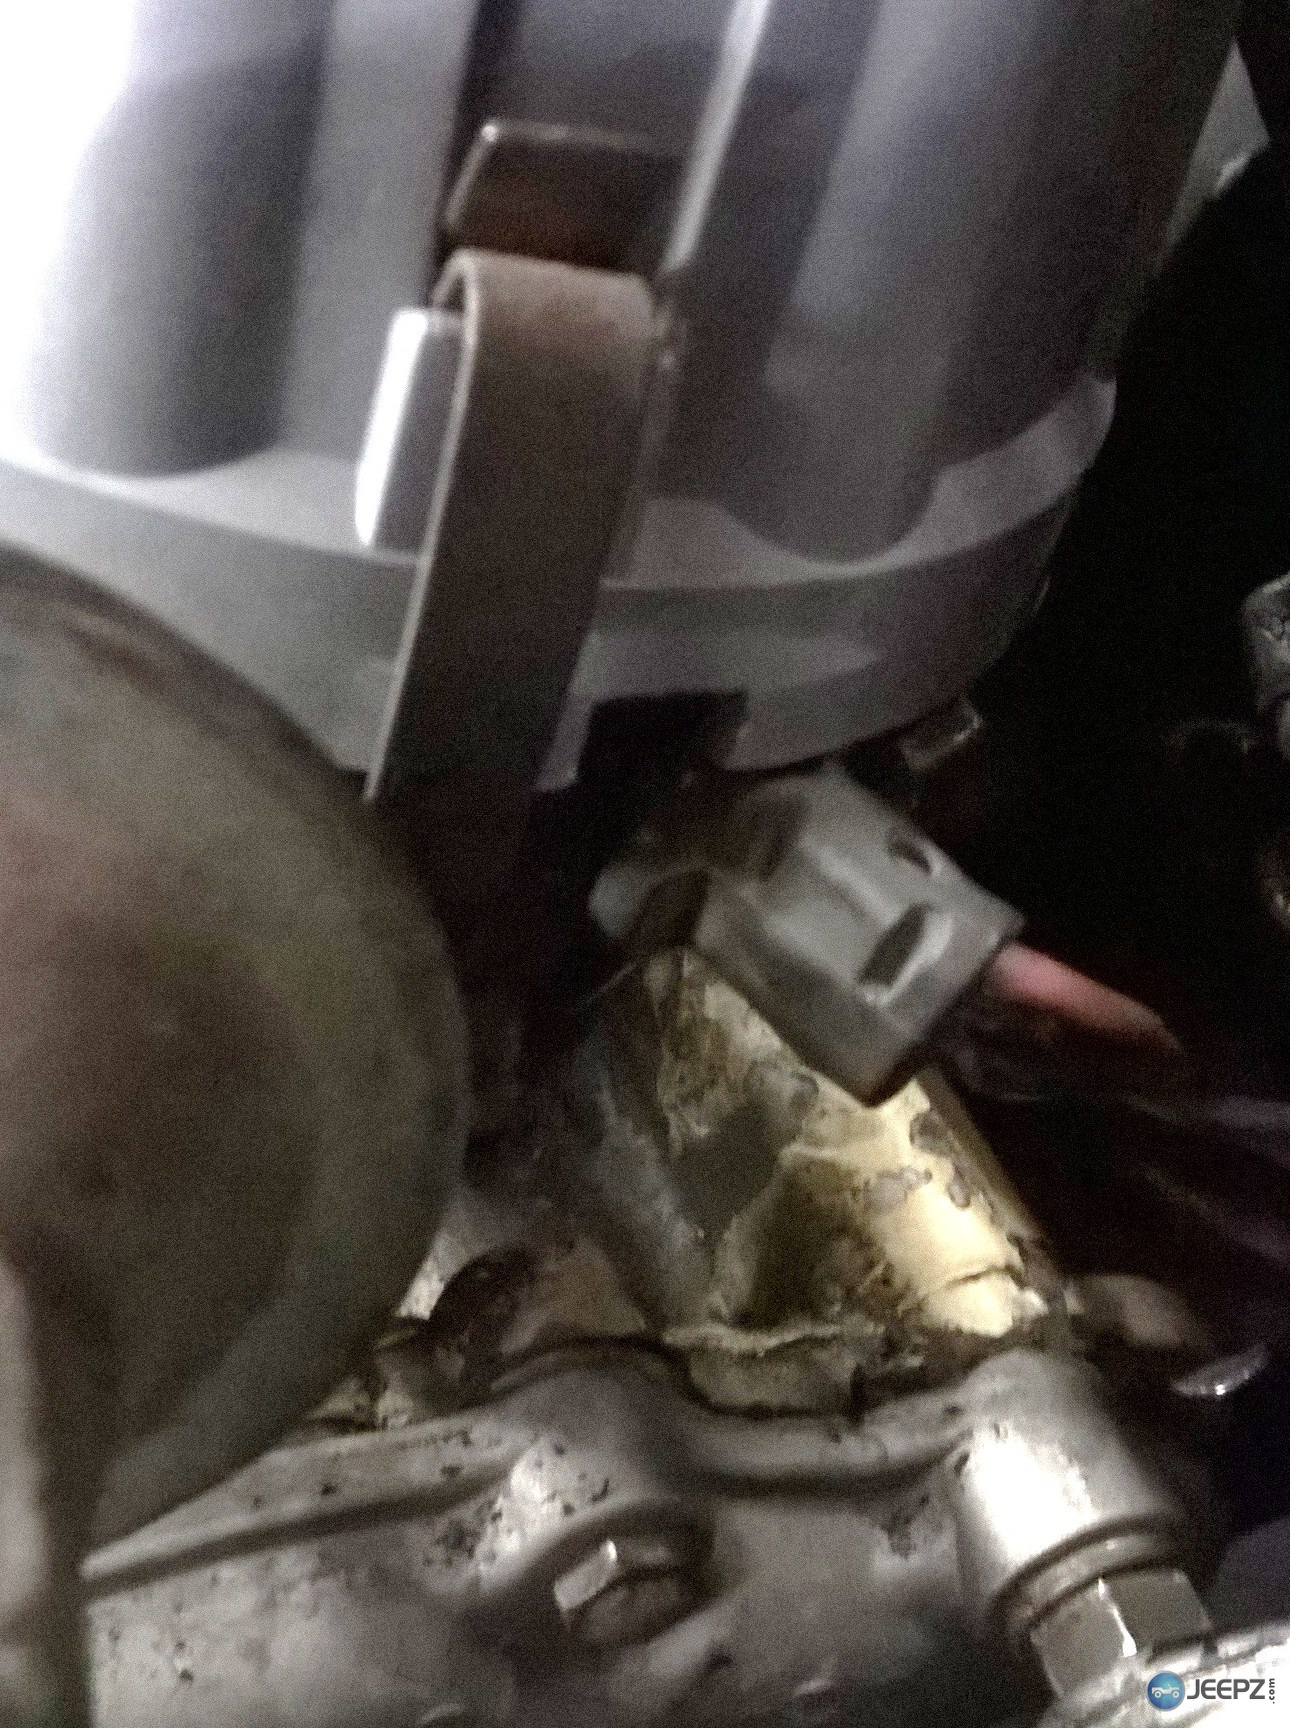 The ignition is Ford EEC-1 from the looks of it. I swapped out the Standard  for an Echlin at NAPA and it is the same, what's going on with this?